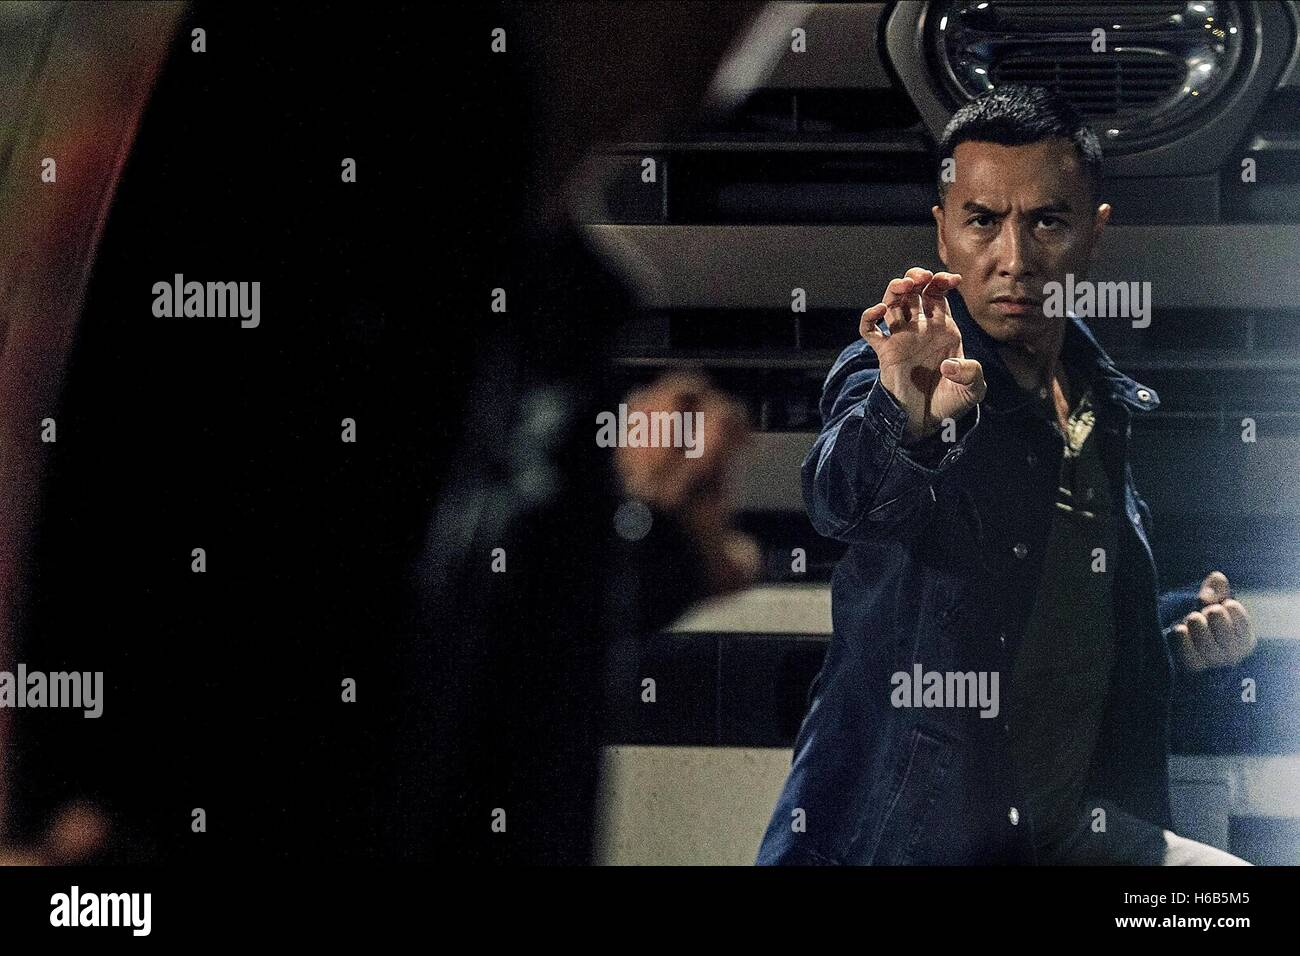 DONNIE YEN KUNG FU JUNGLE; YAT KU CHAN DIK MOU LAM (2014) - Stock Image